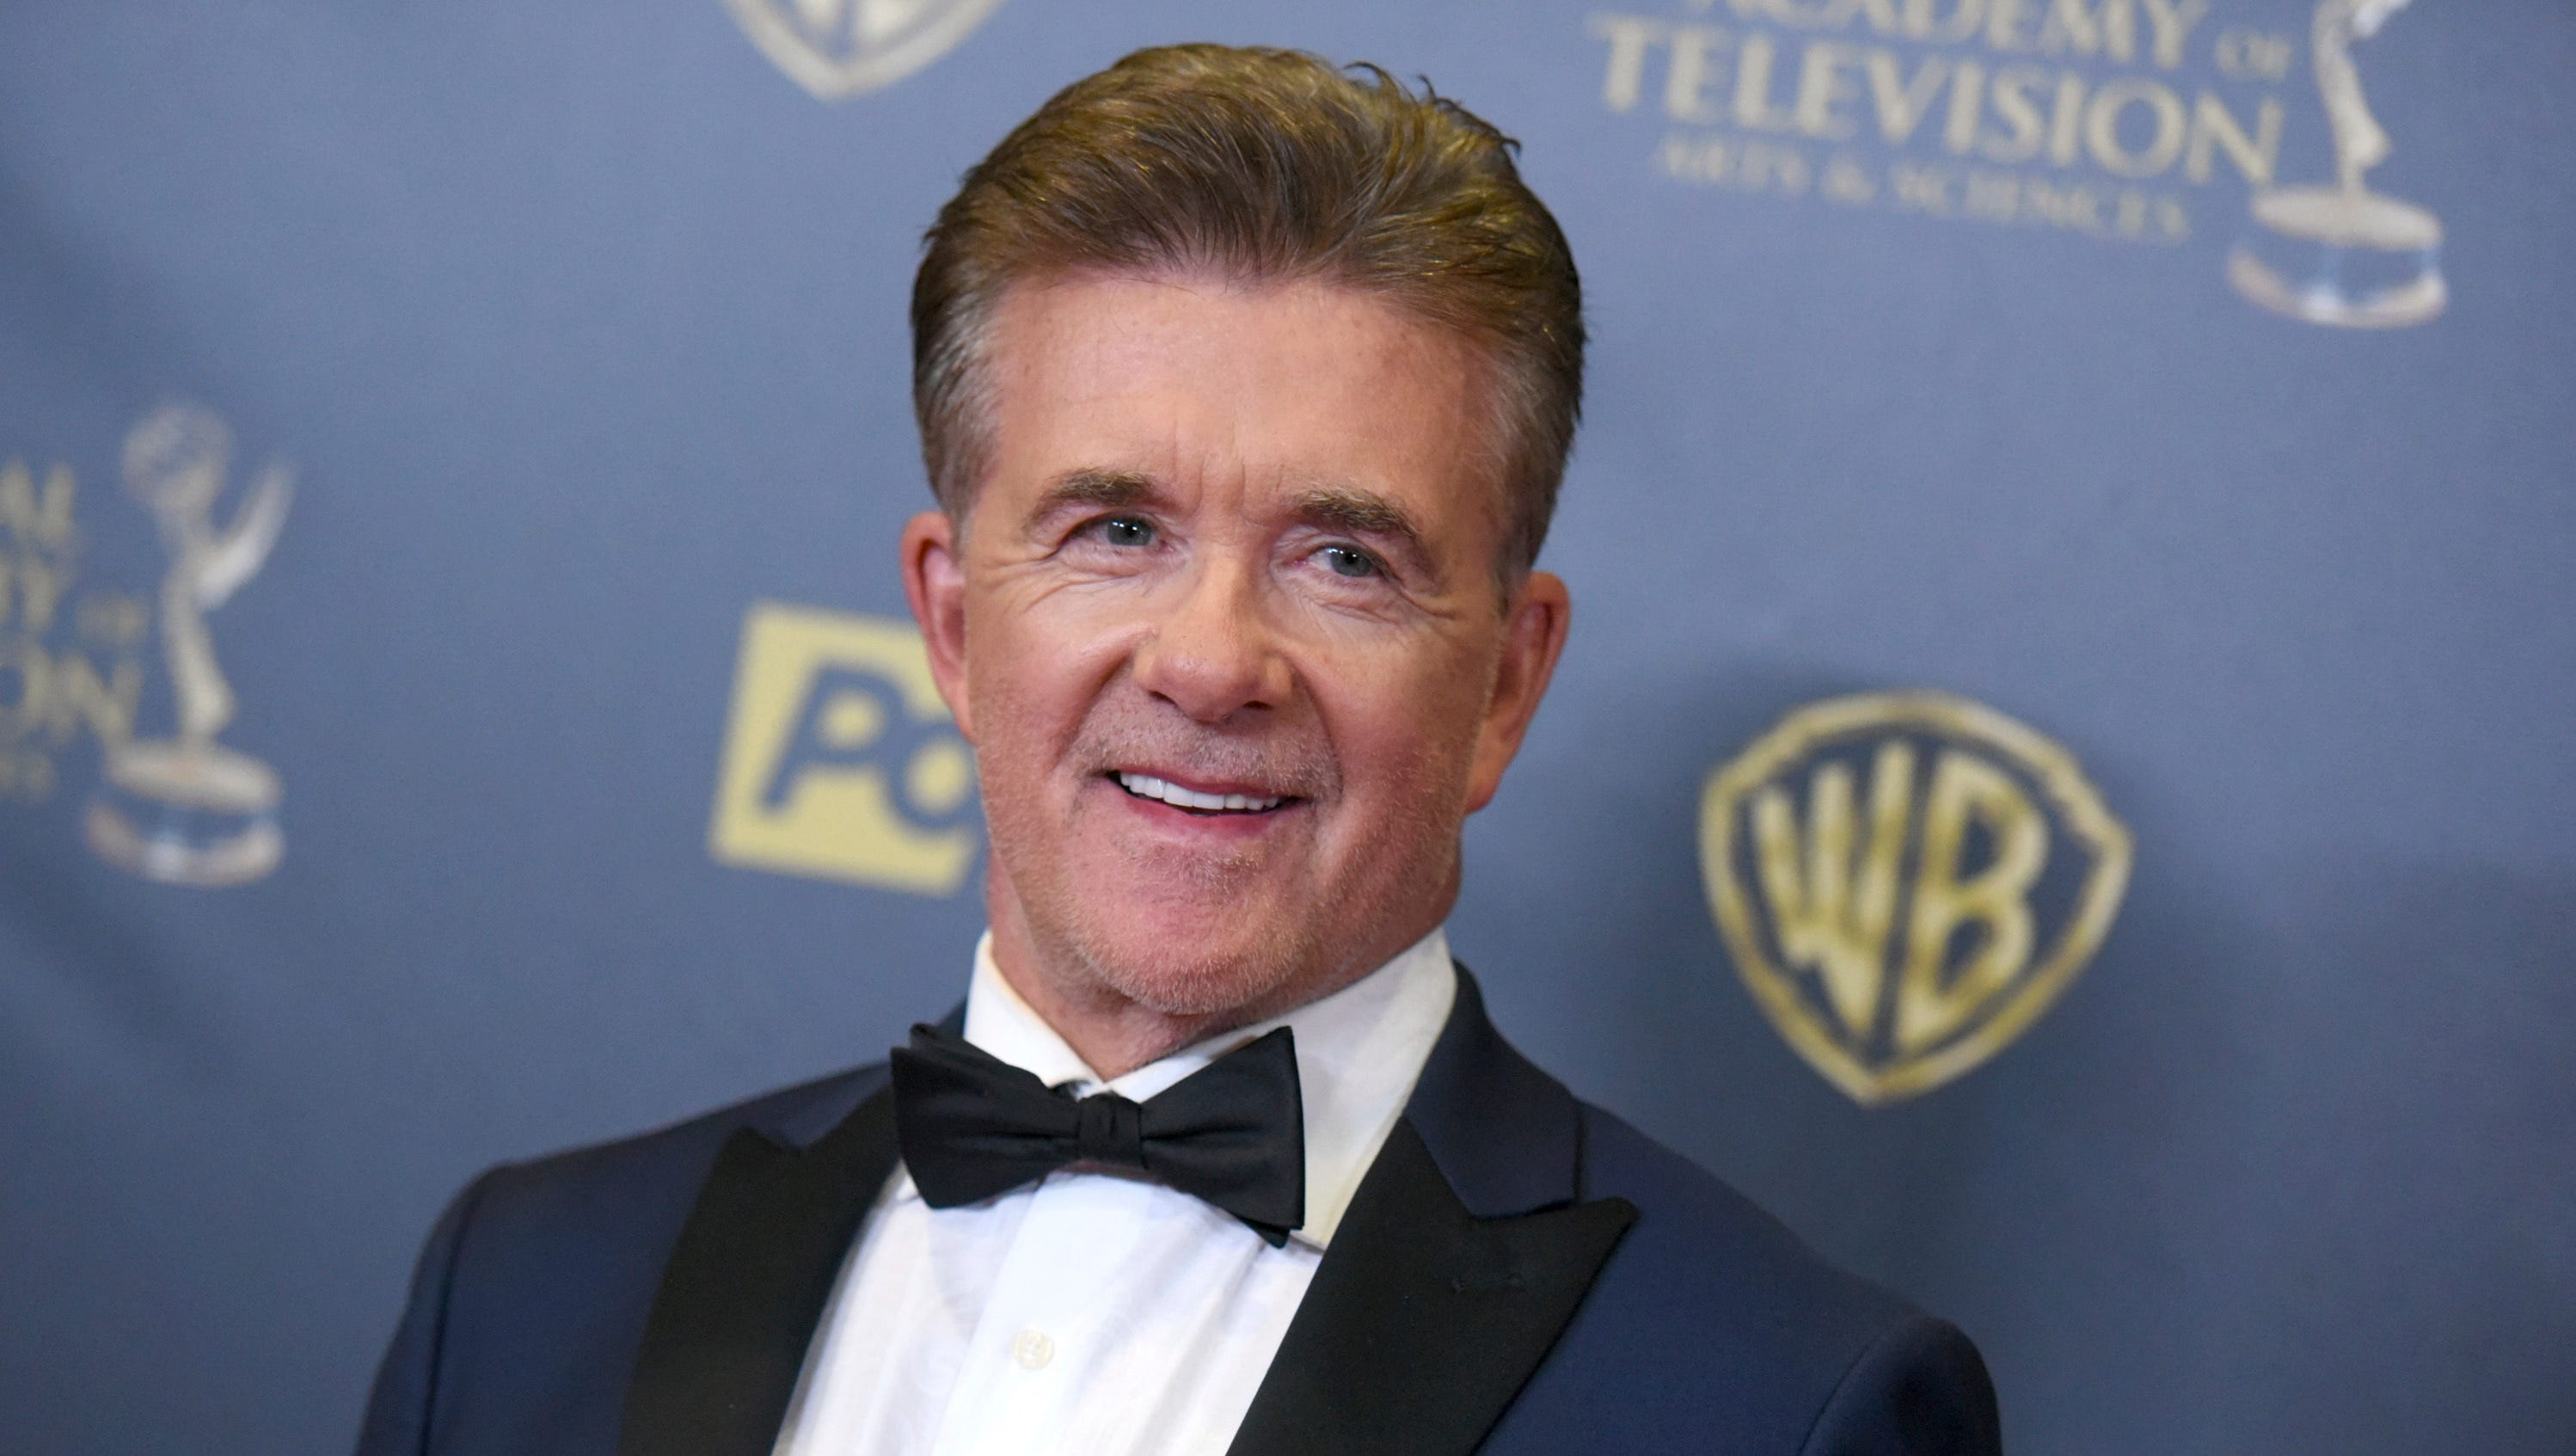 Alan Thicke died from 'ruptured aorta'